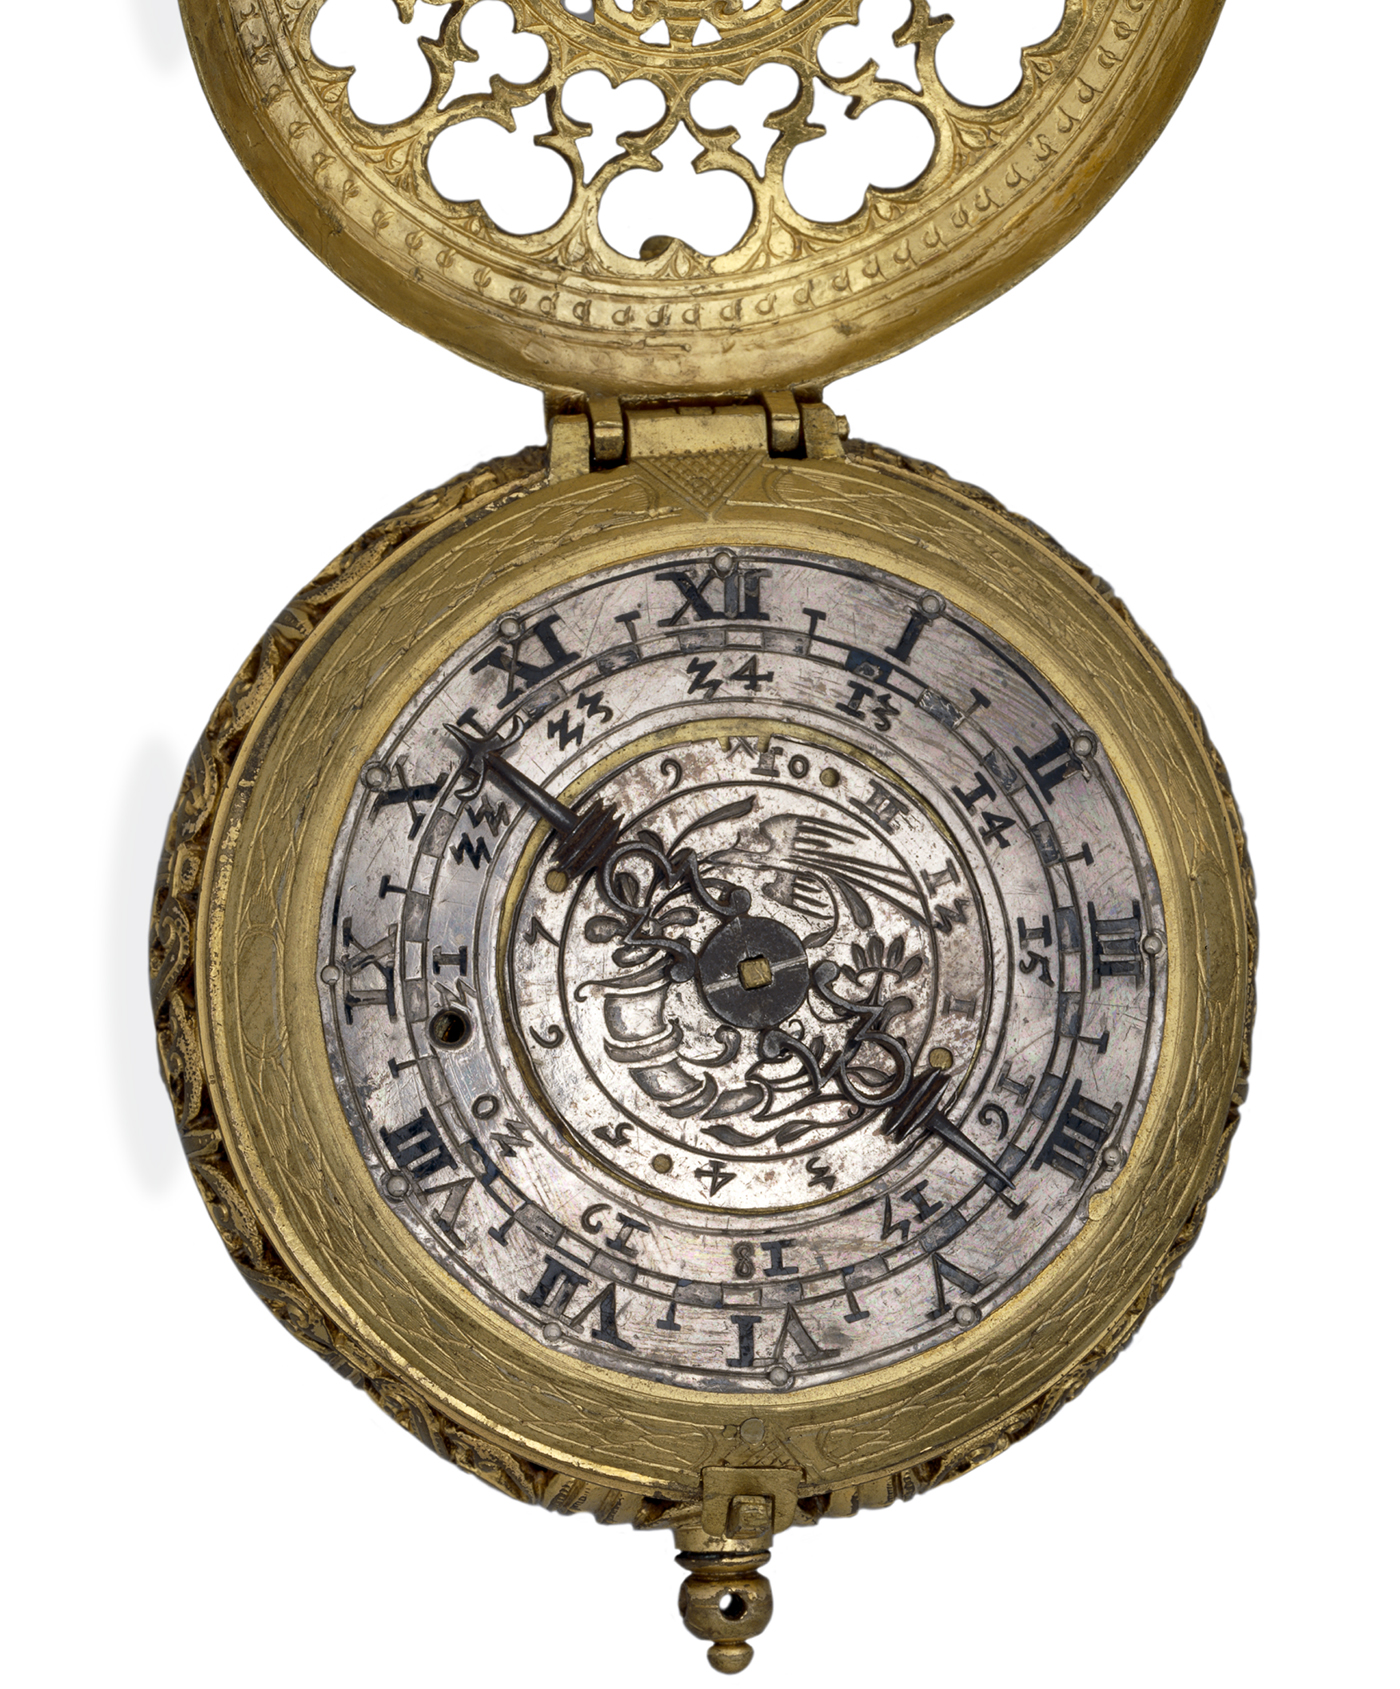 Gilt-brass cased clock-watch with alarm, by Hans Schniep. Speyer, Germany, c. 1590-1610